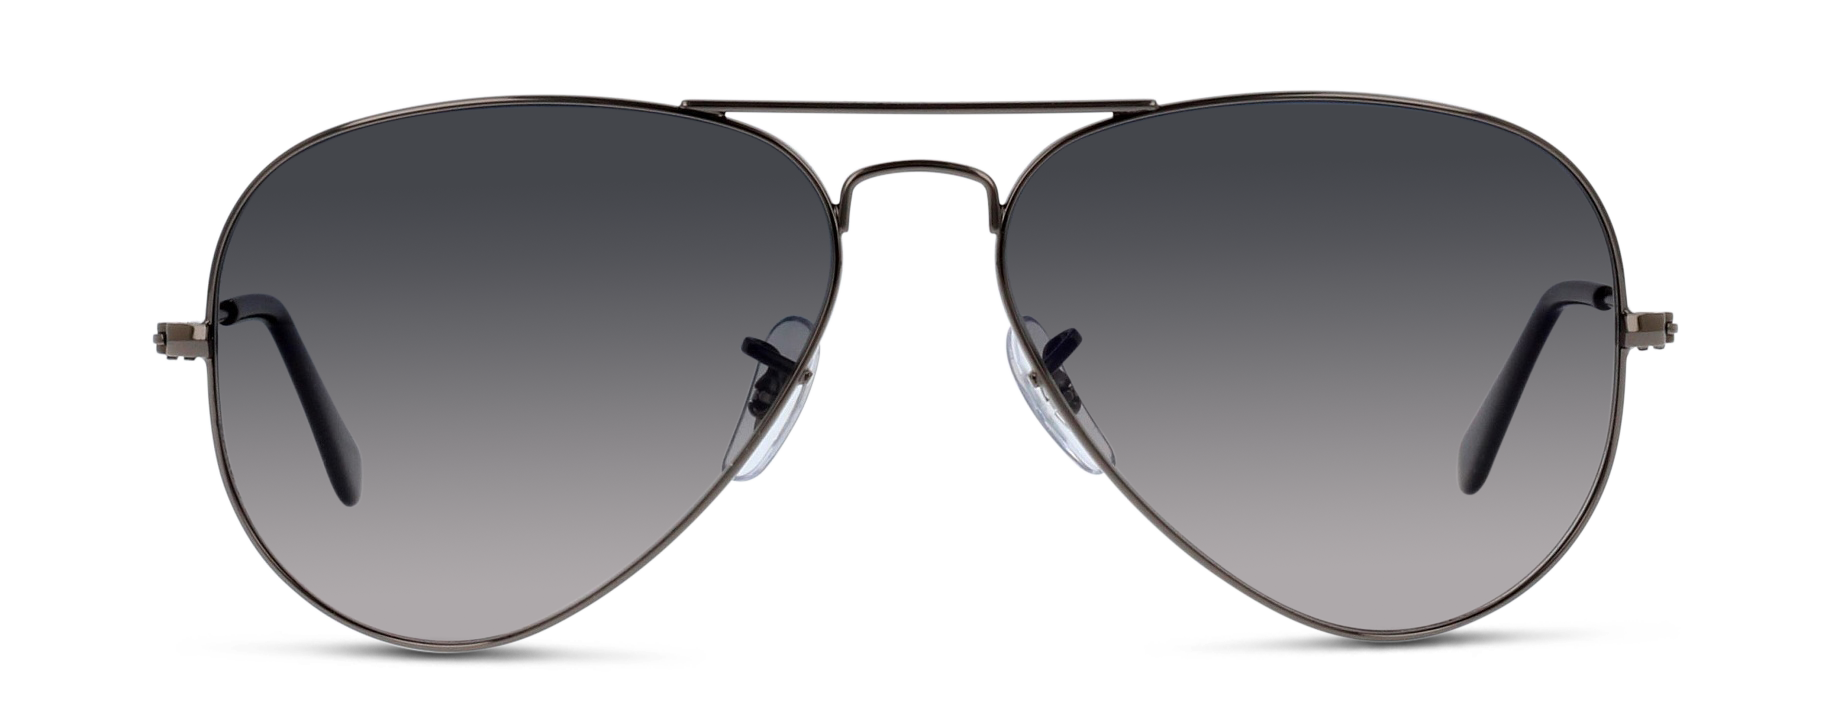 Front Ray-Ban 0RB3025/004-78/5814/135 Grå